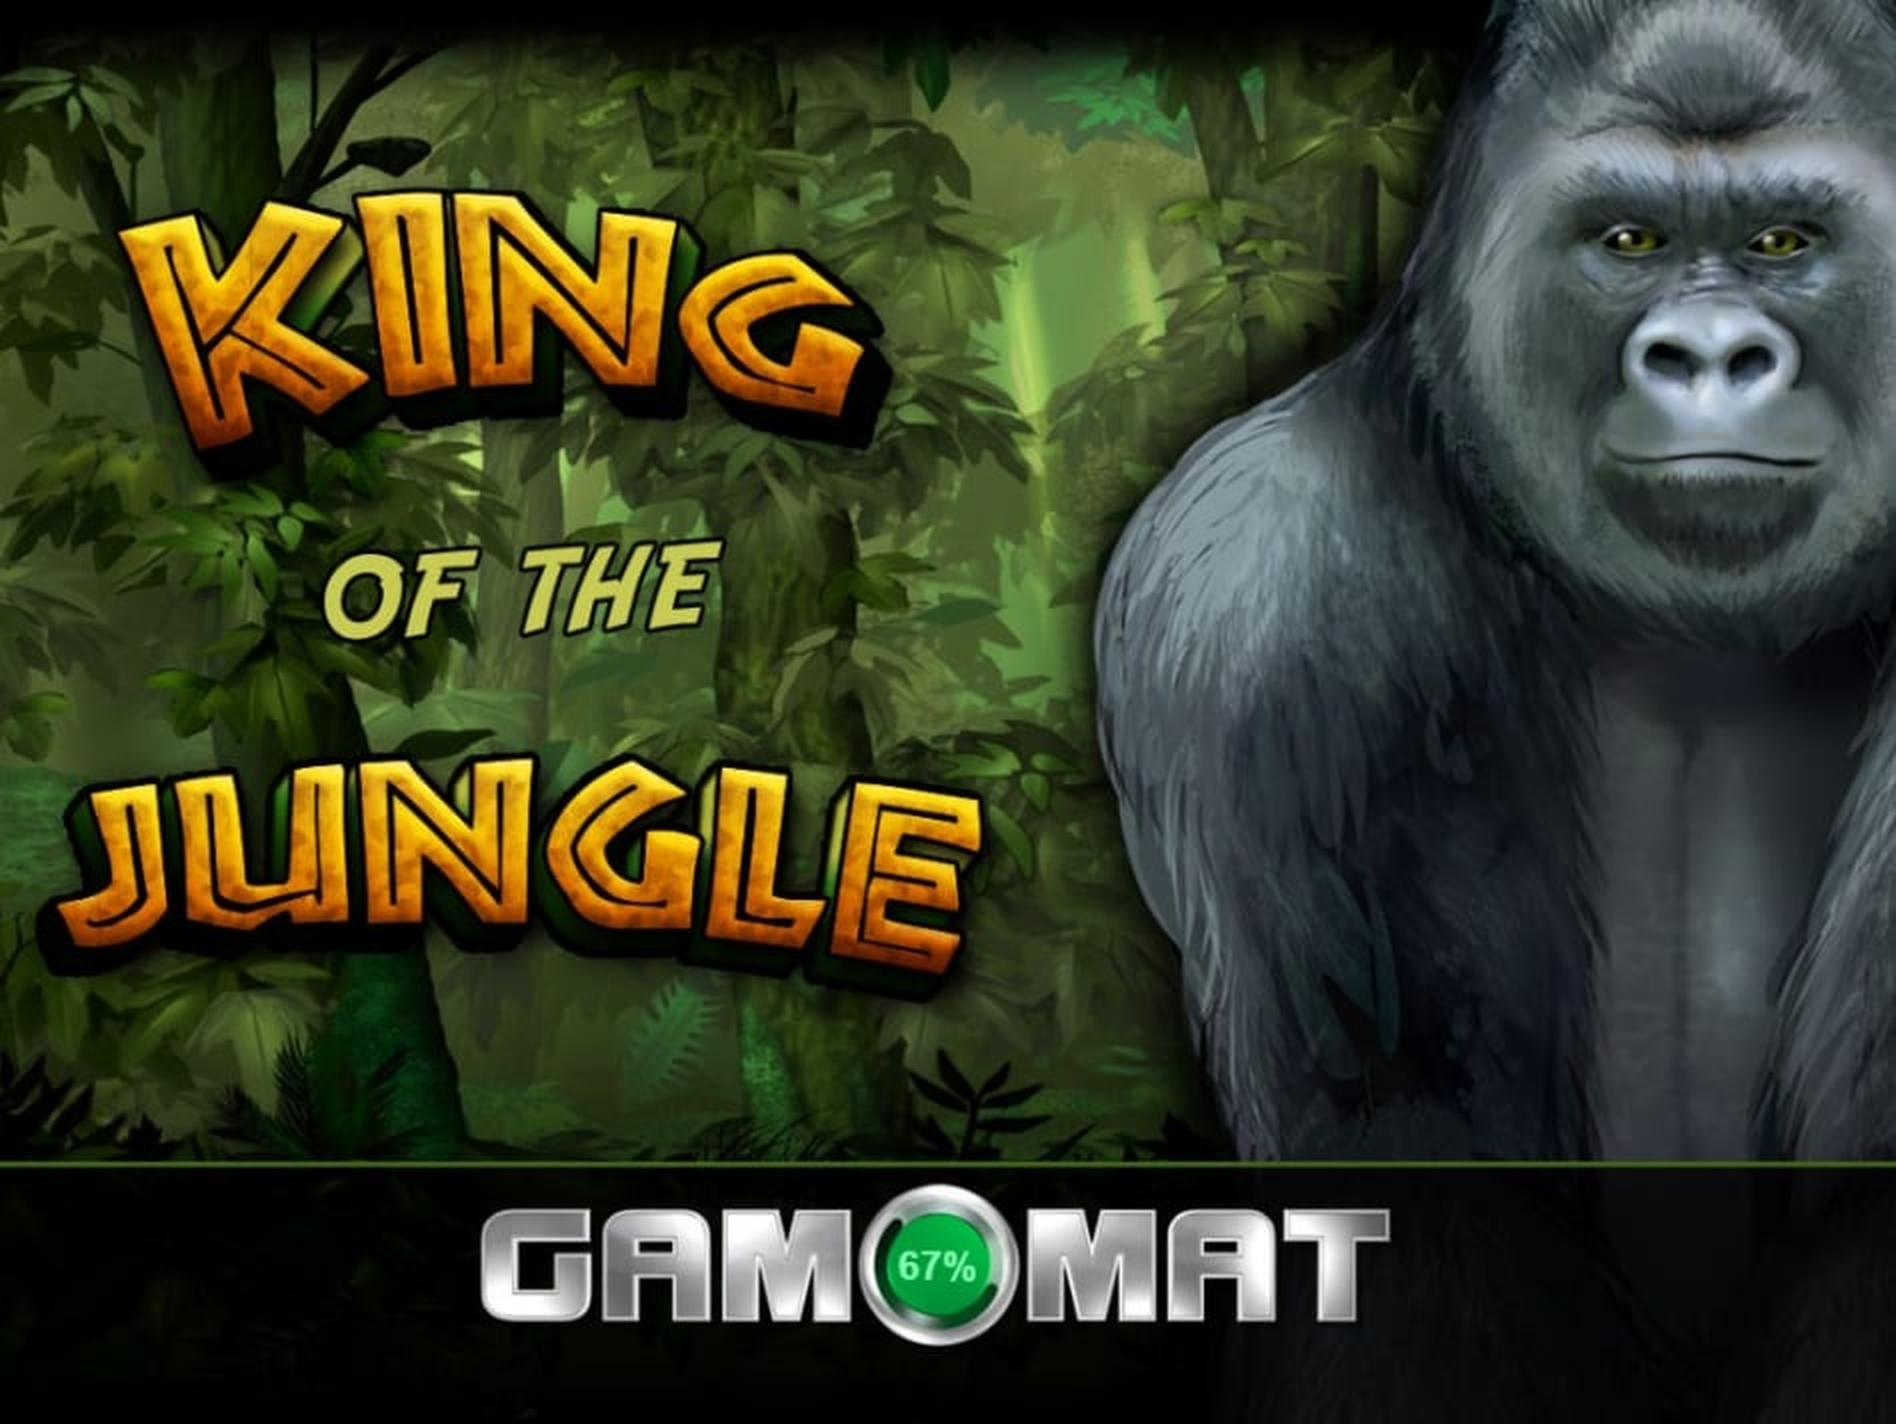 The King of the Jungle (Gamomat) Online Slot Demo Game by Gamomat